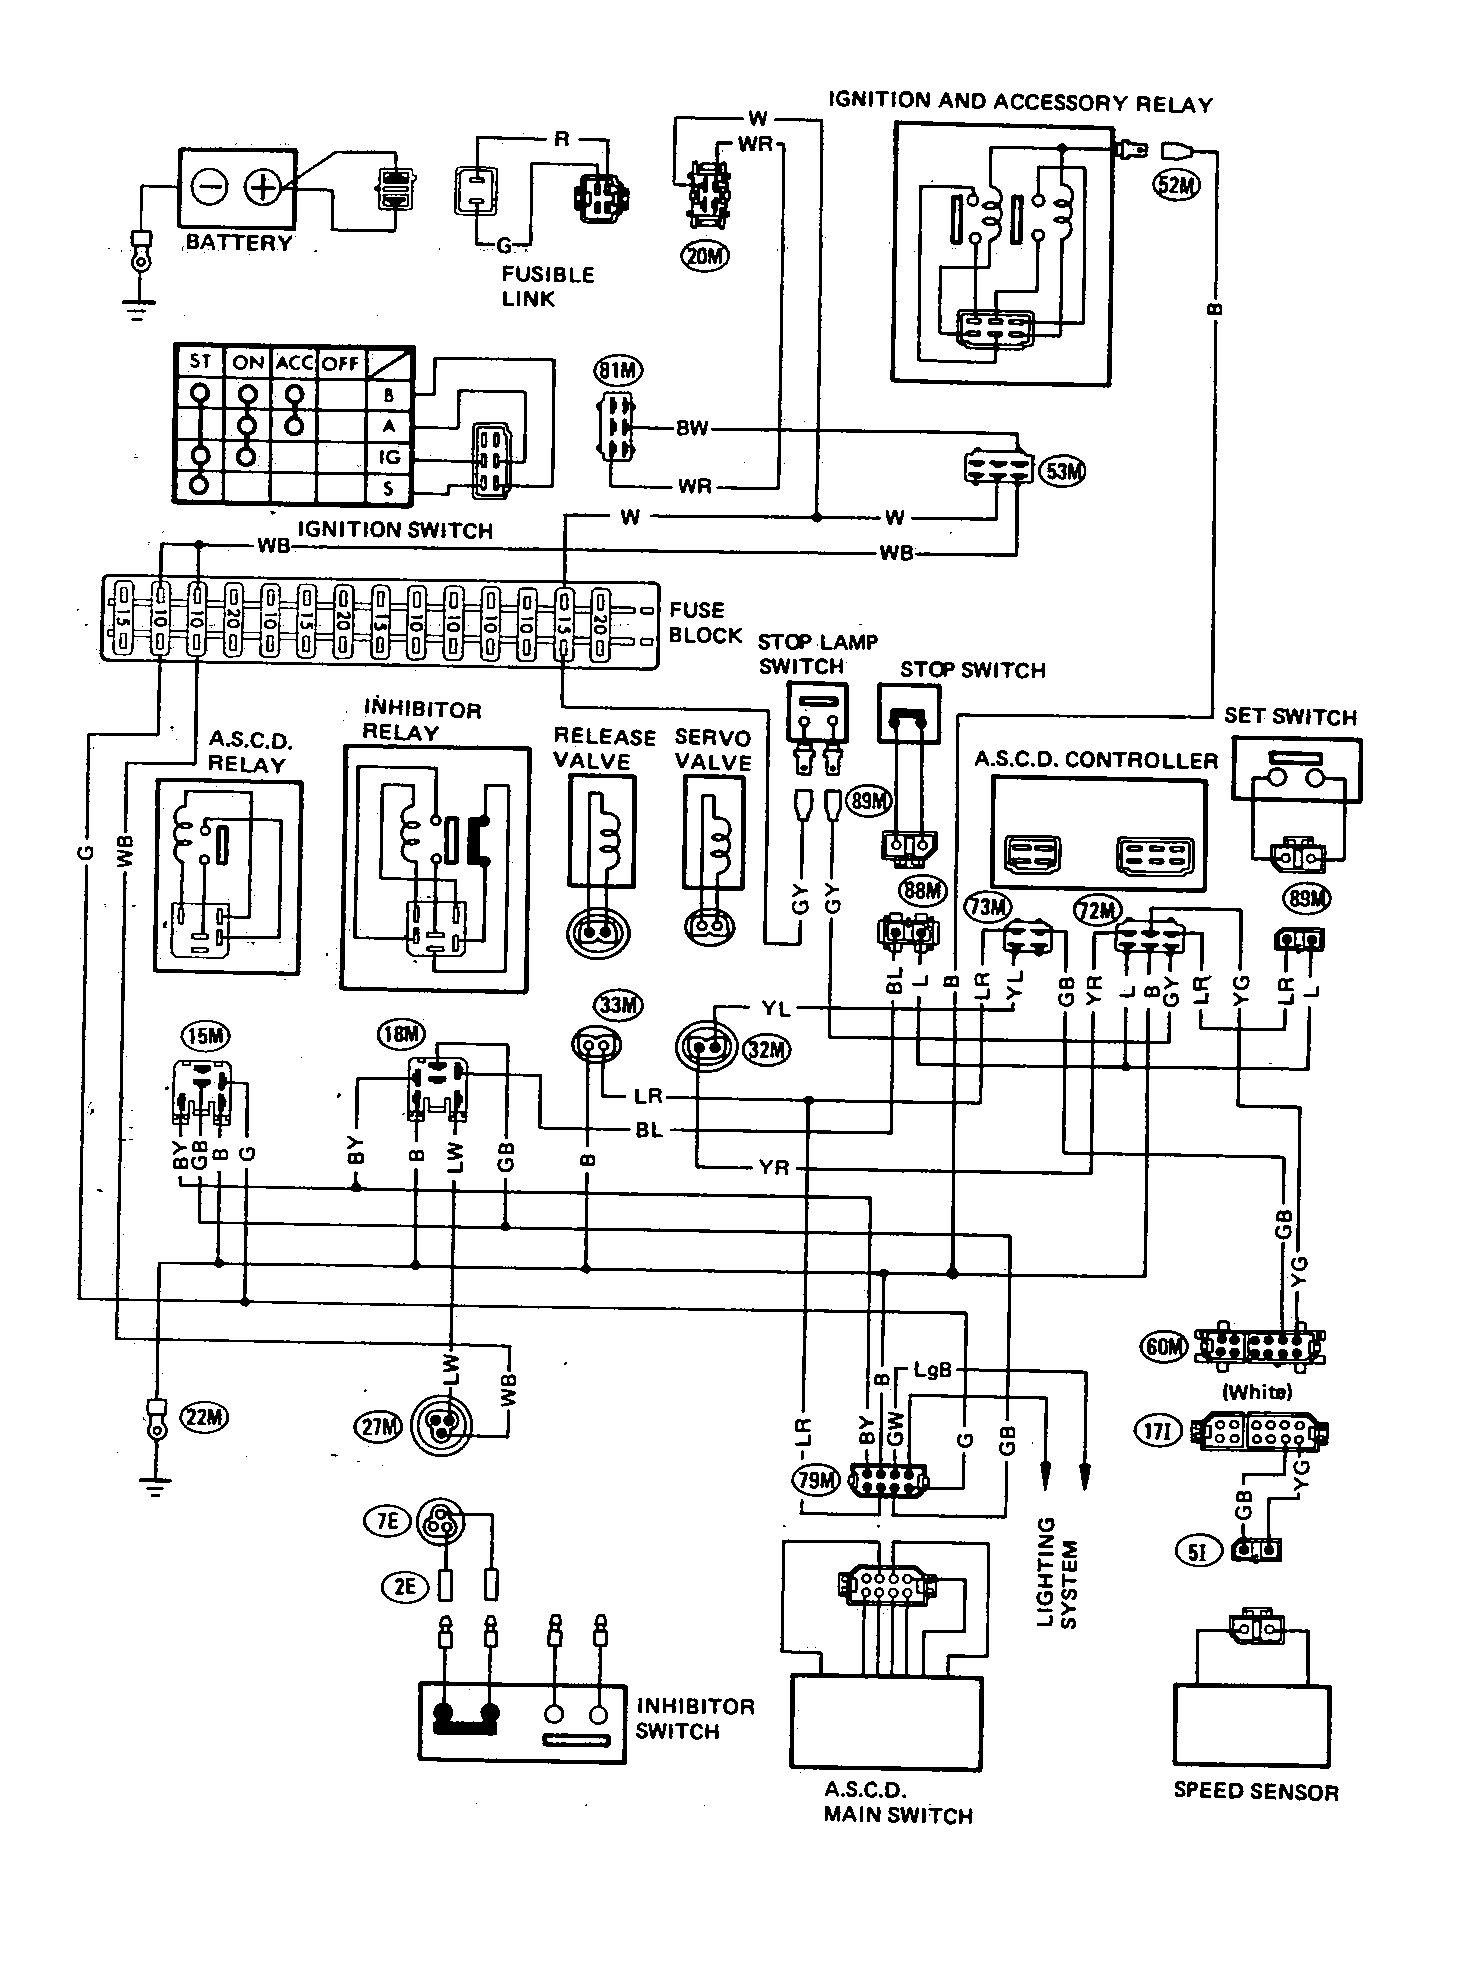 Wiring Diagram For 1957 Lincoln And Continental